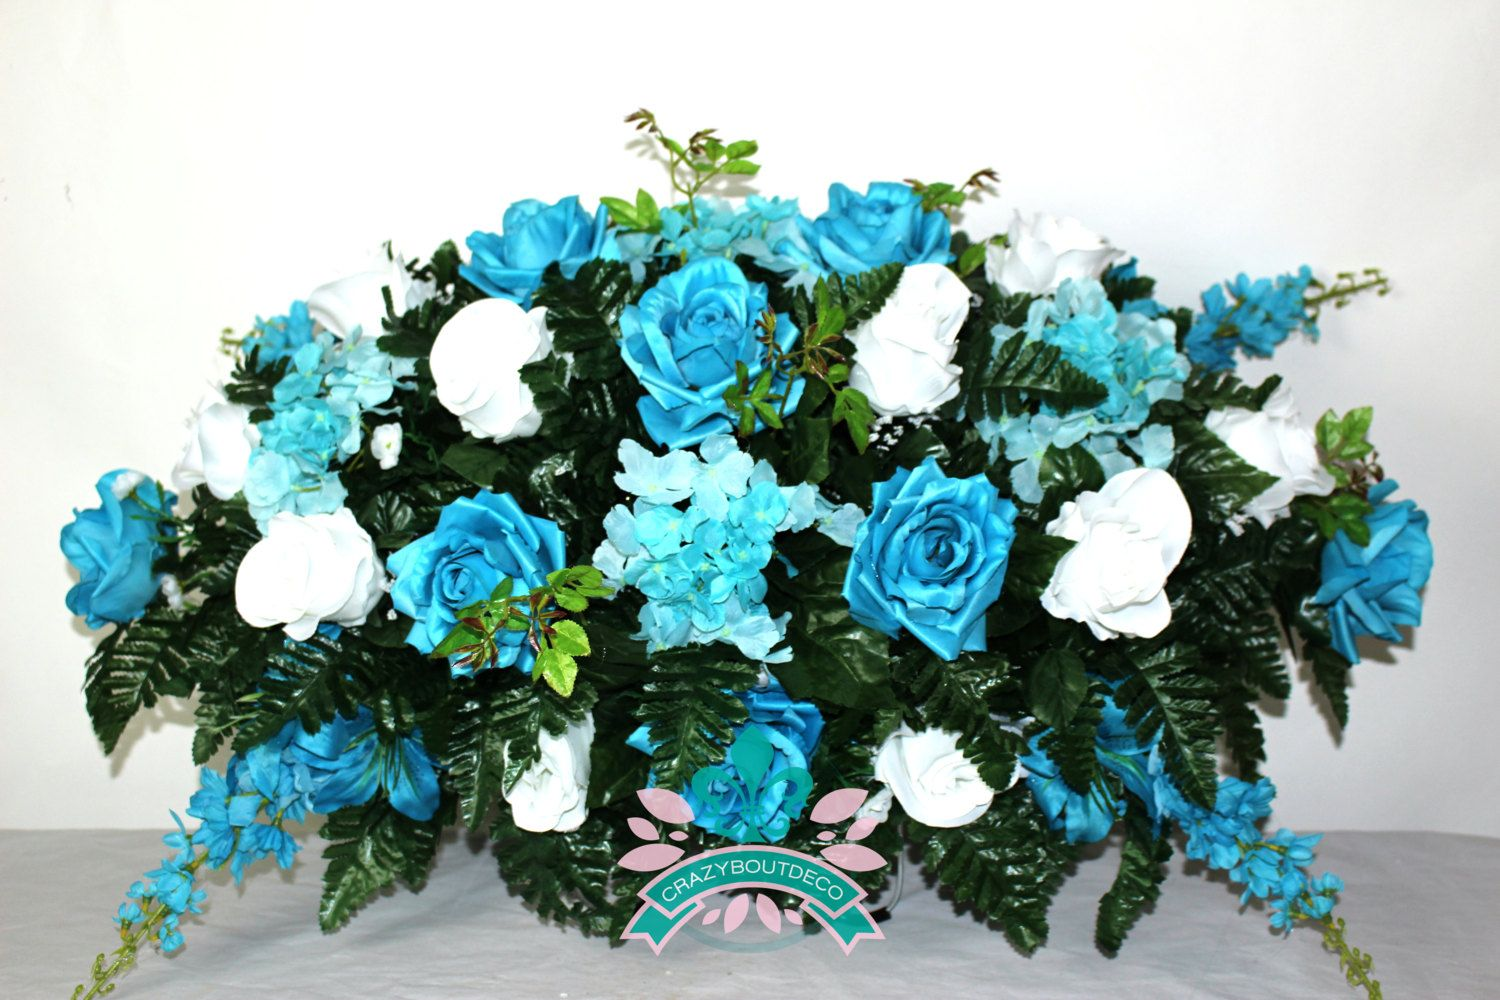 Beautiful XL Roses And Hydrangea Tombstone Headstone Saddle by Crazyboutdeco on Etsy